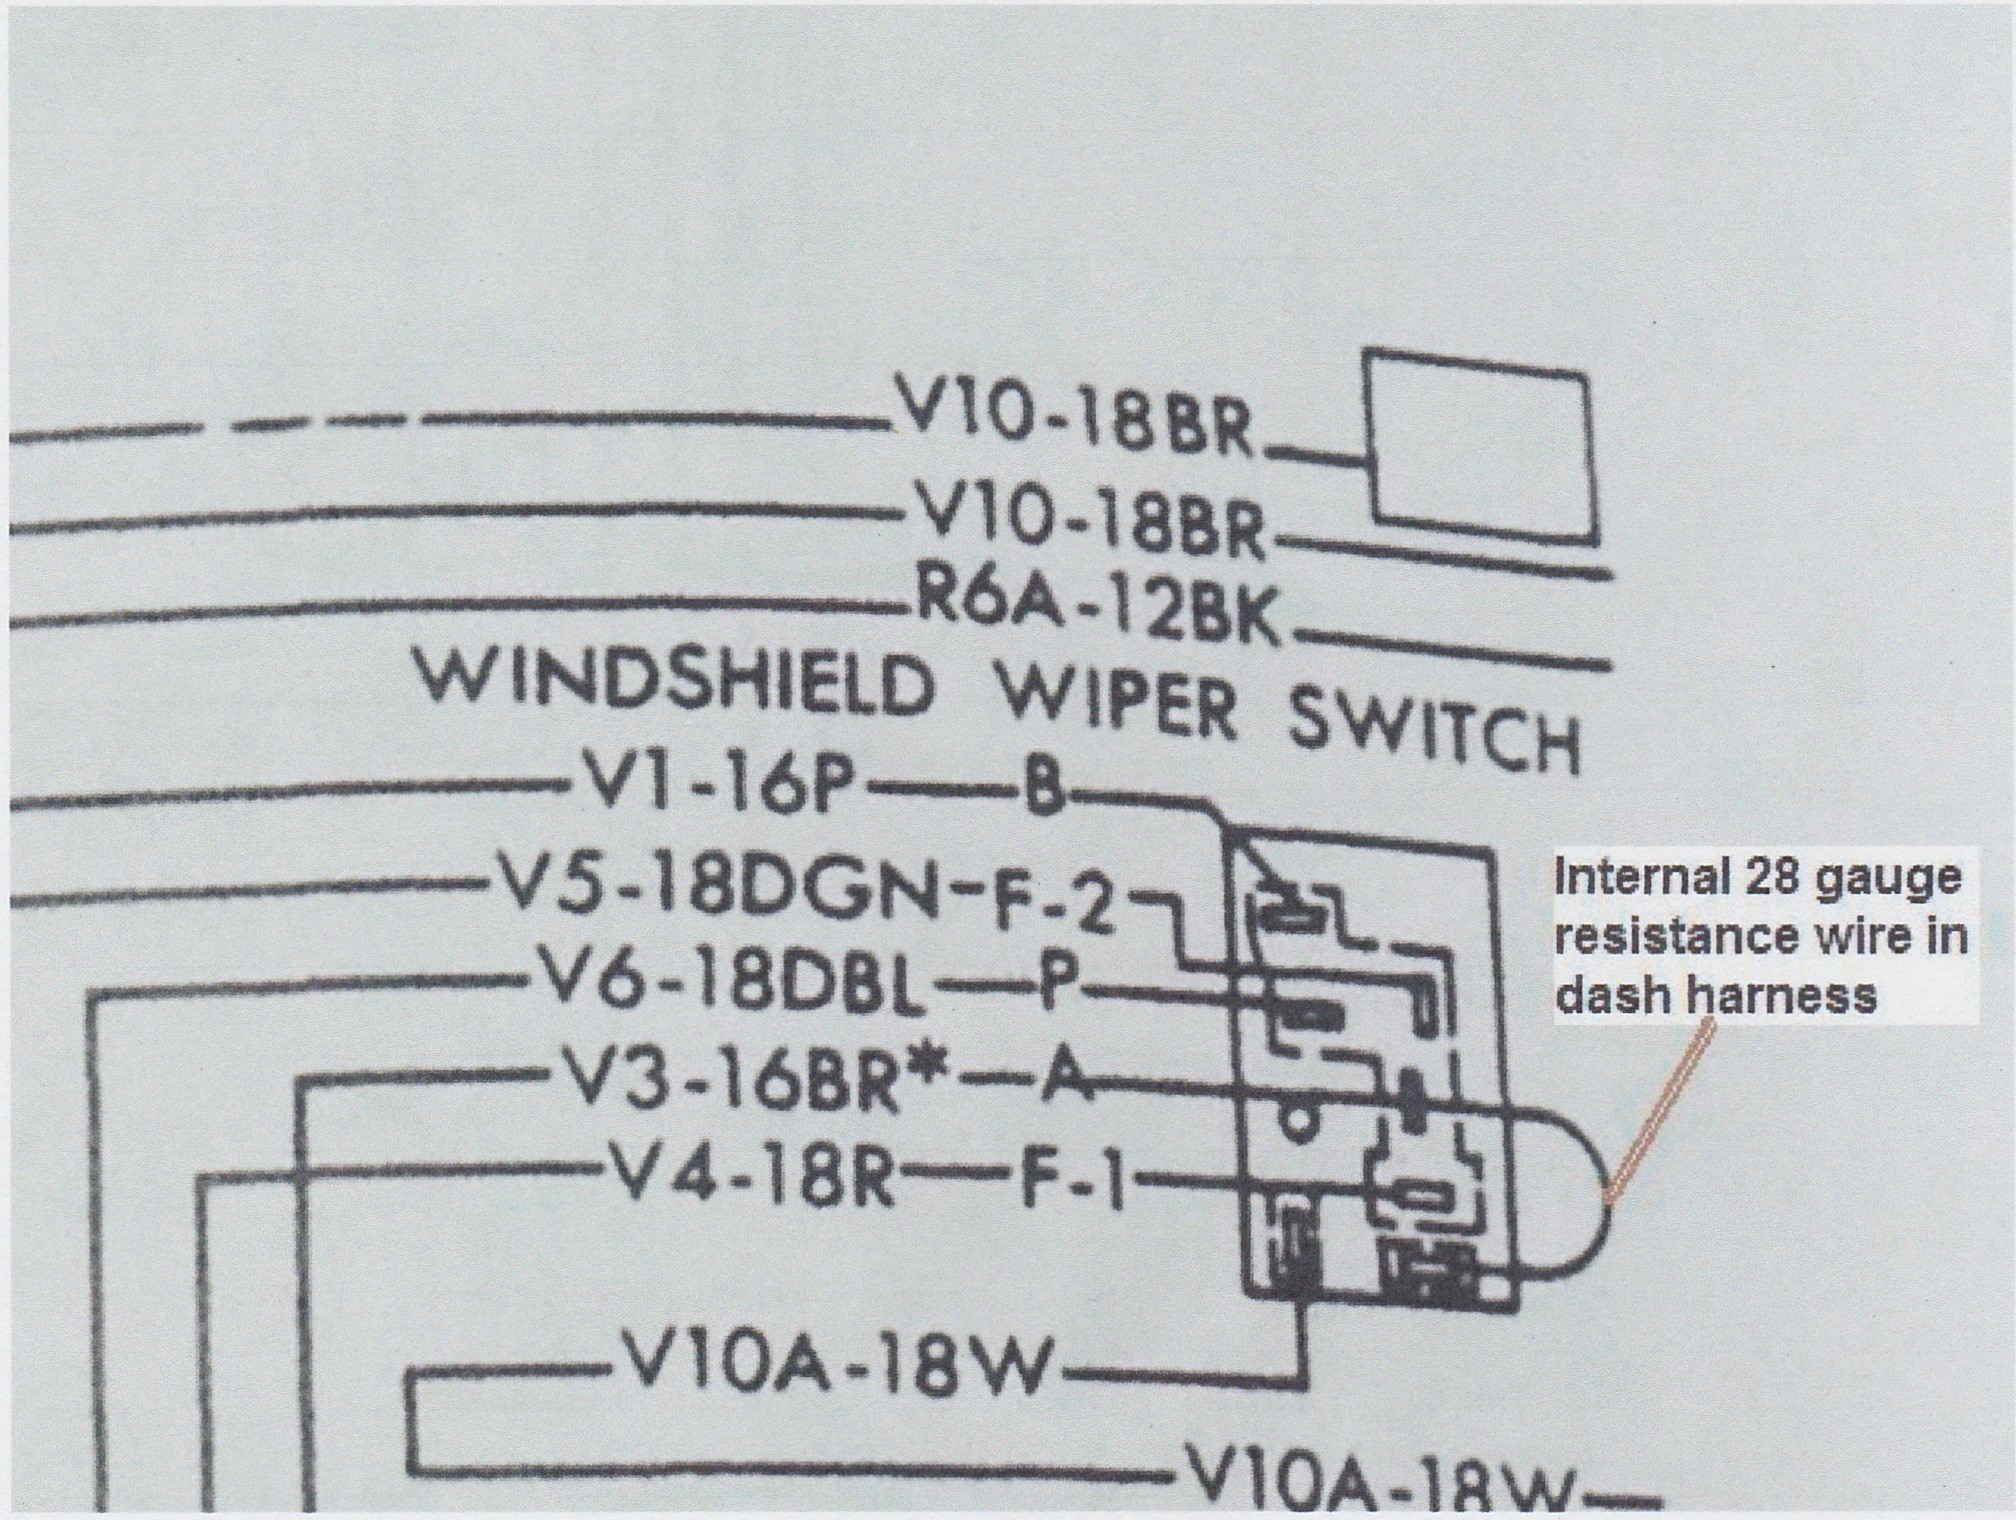 wiper wiring moparts restoration a12 forum forums get free image about wiring diagram